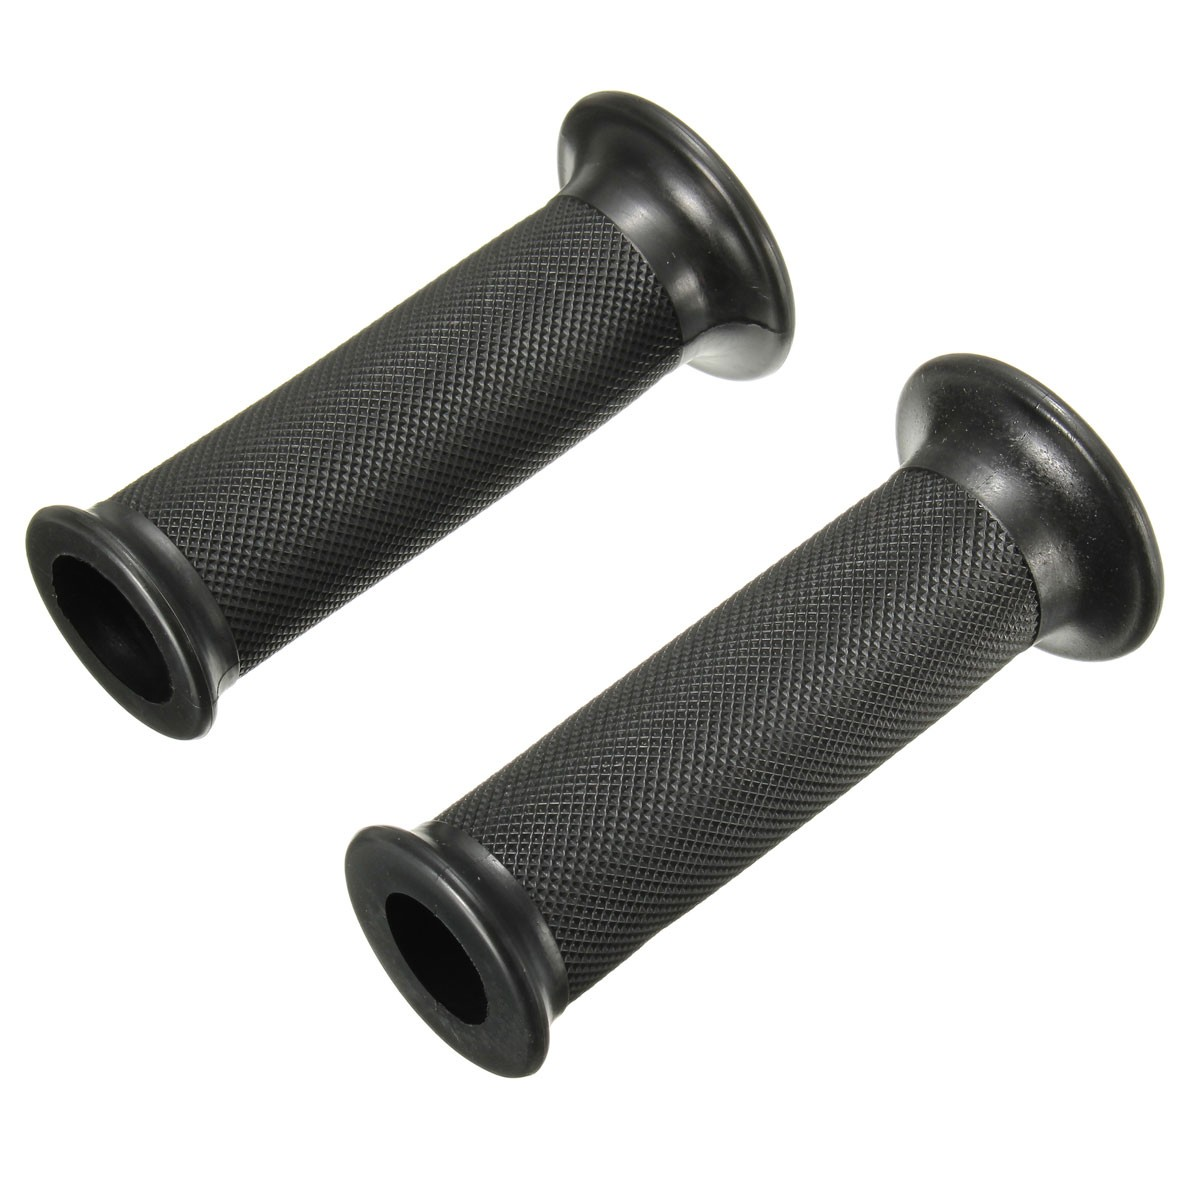 2PCs Universal Black Rubber Motorcycle Handlebars Hand Grips 22mm